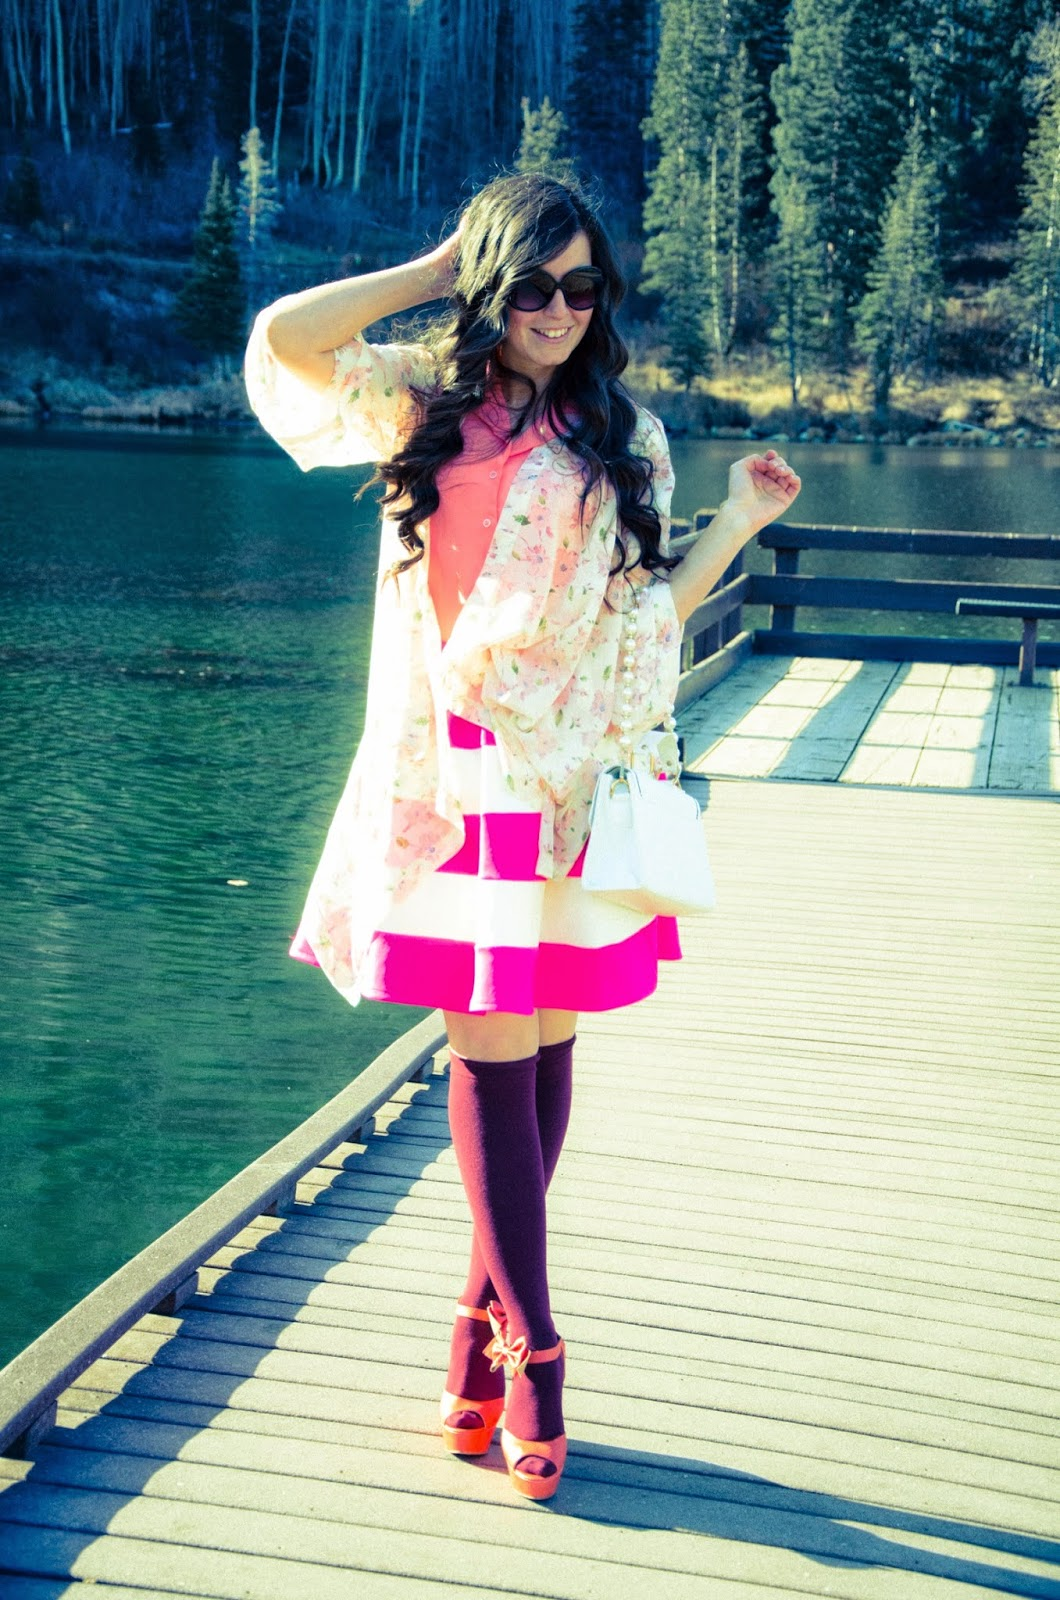 brighton resort, everyone wears pink on wednesdays, pink skater skirt, silver lake, floral kimono, pink striped skirt, bow wedges, pink wedges, thigh high socks, breast cancer awareness,